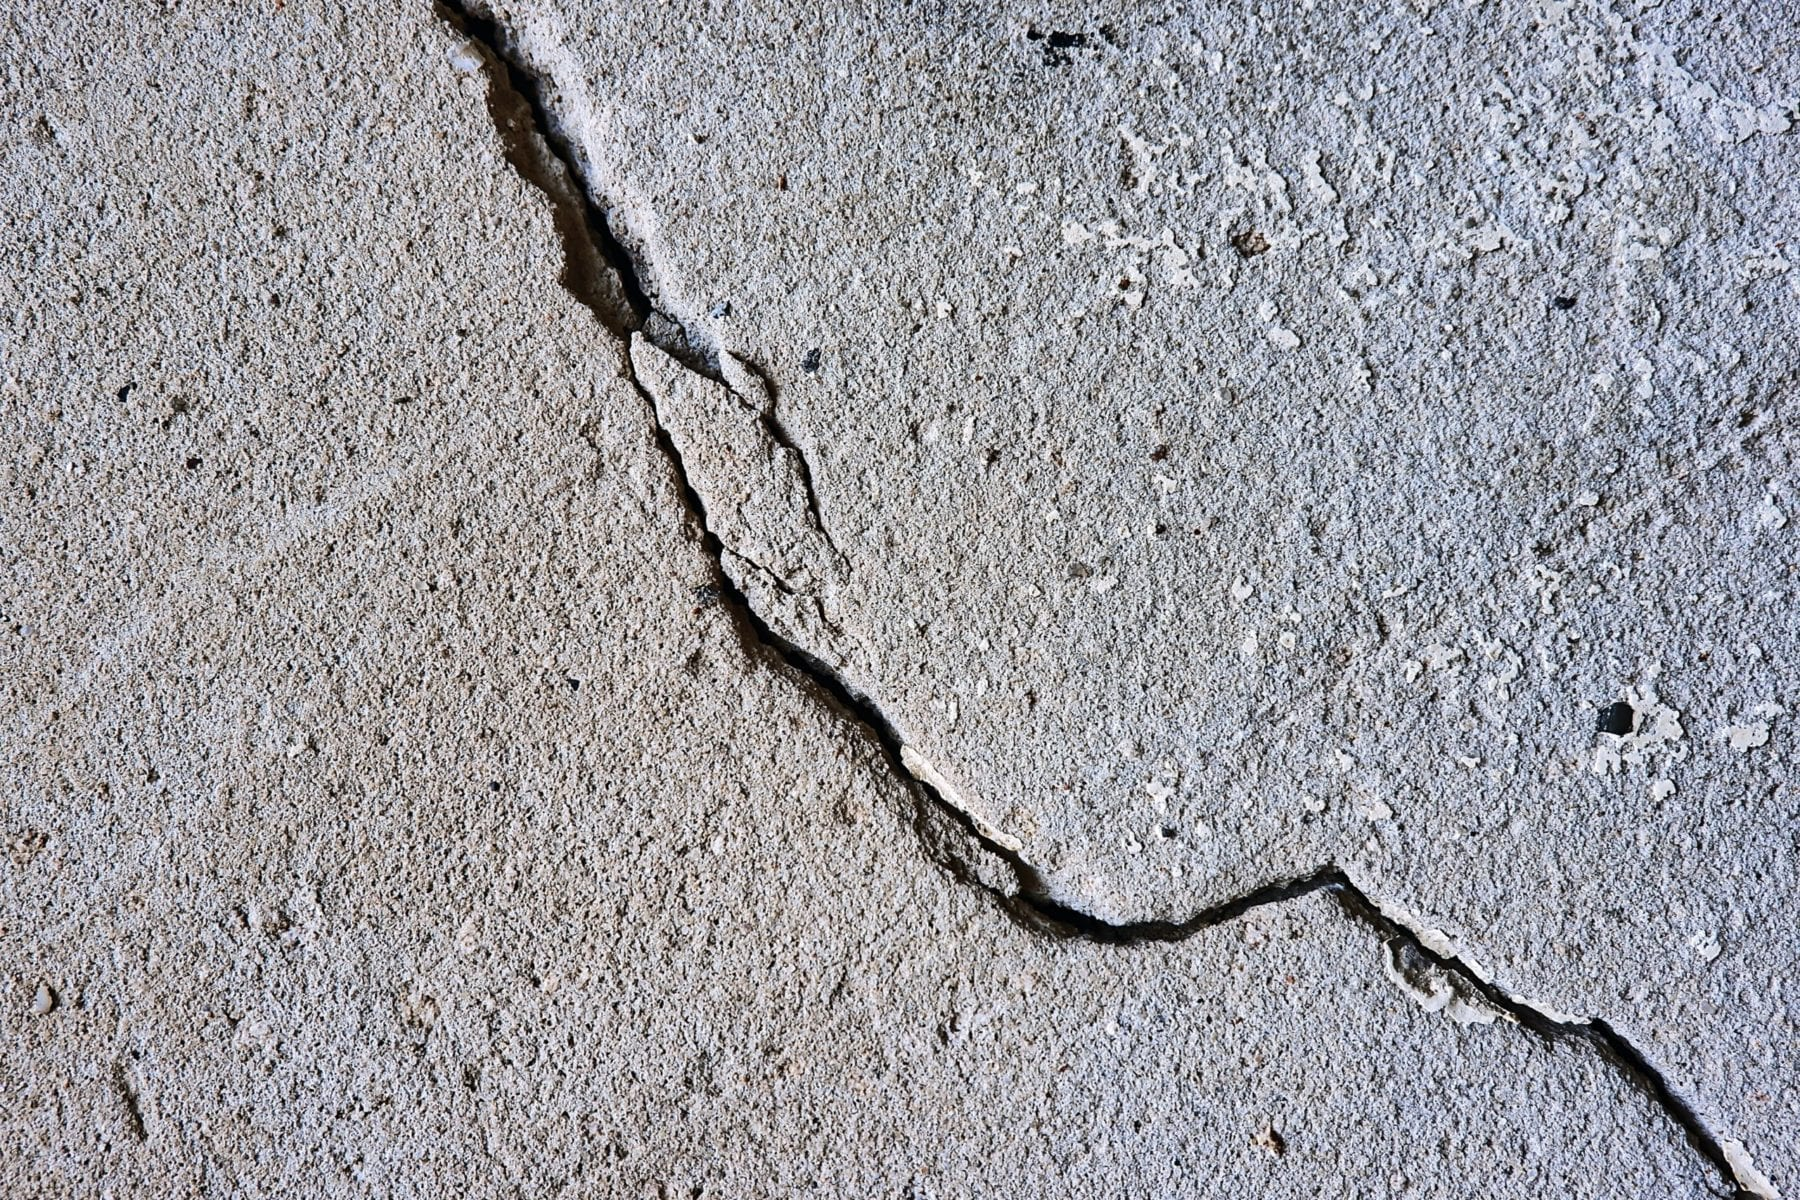 Learn everything about earthquakes